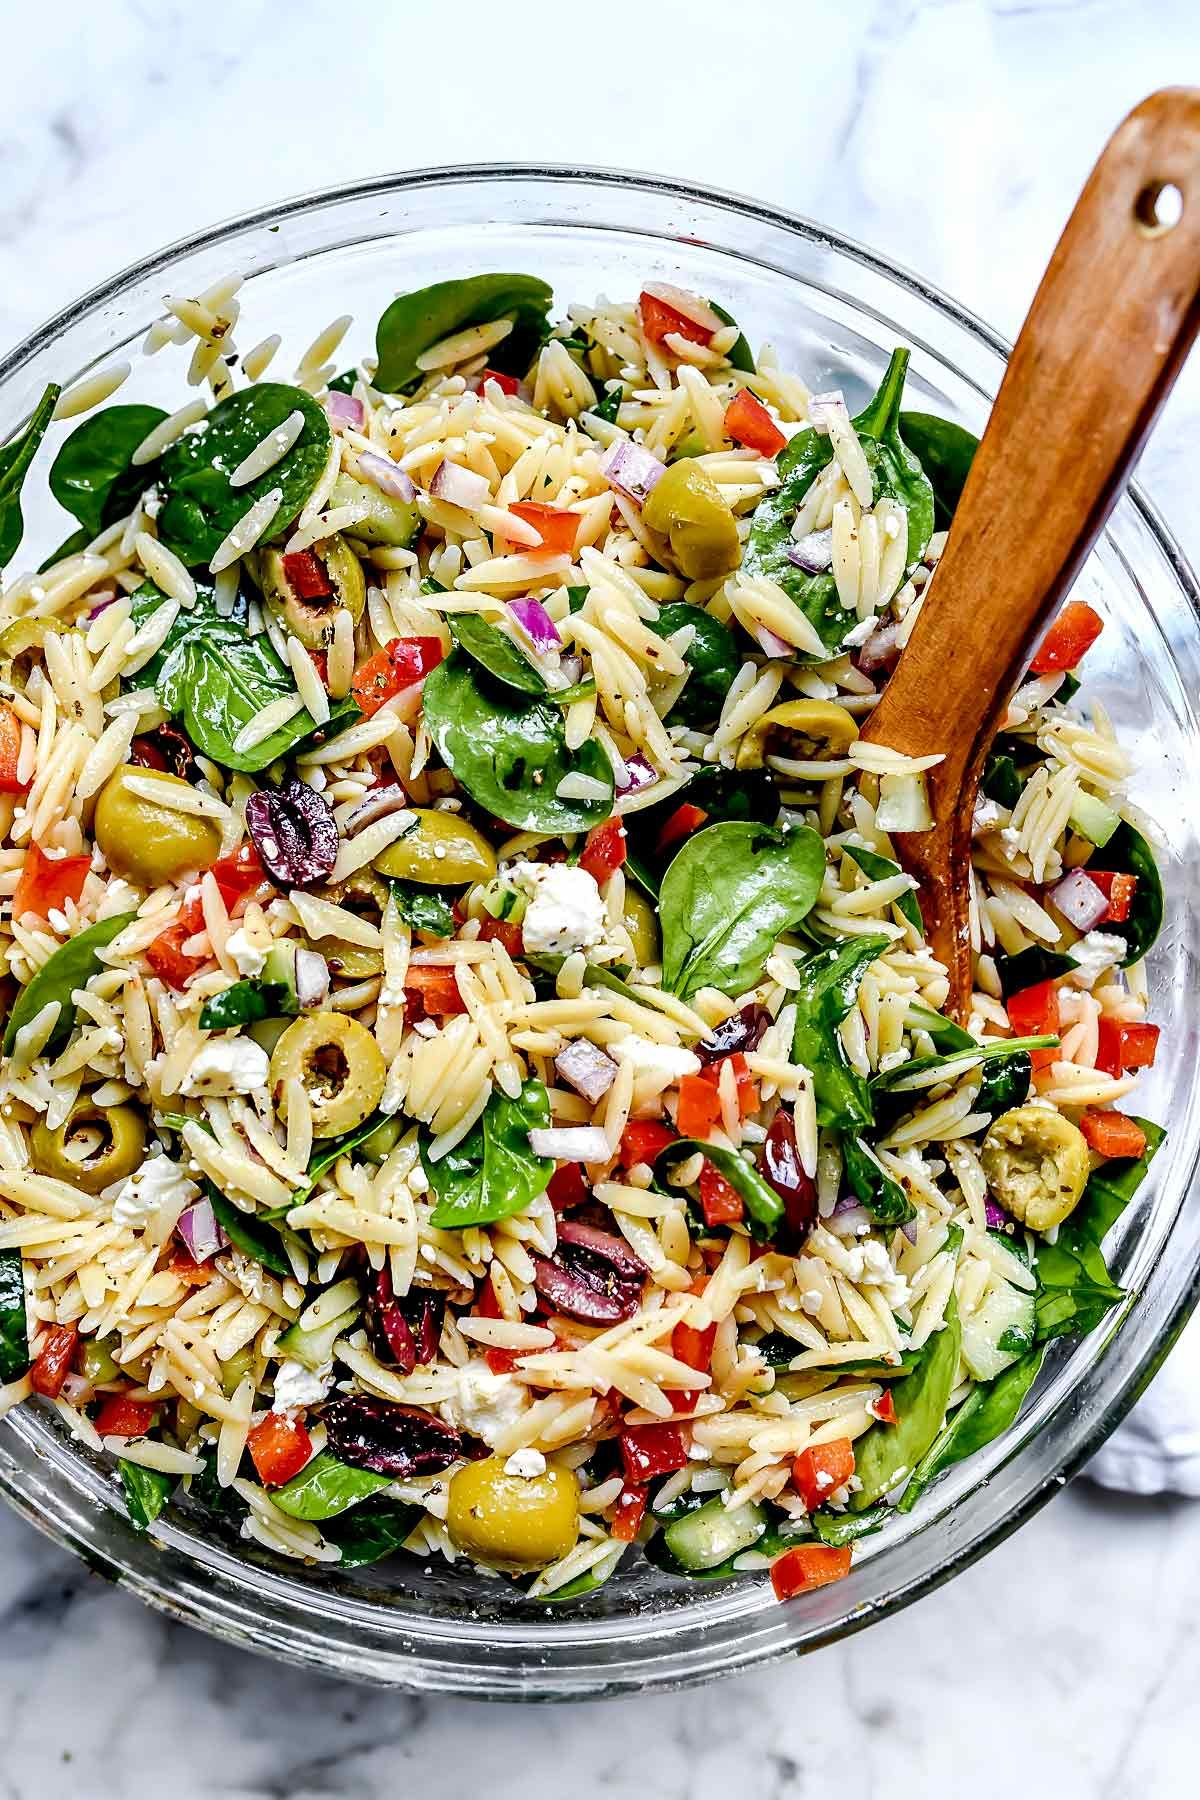 22 Super Easy Pasta Salads We'll be Eating on Repe